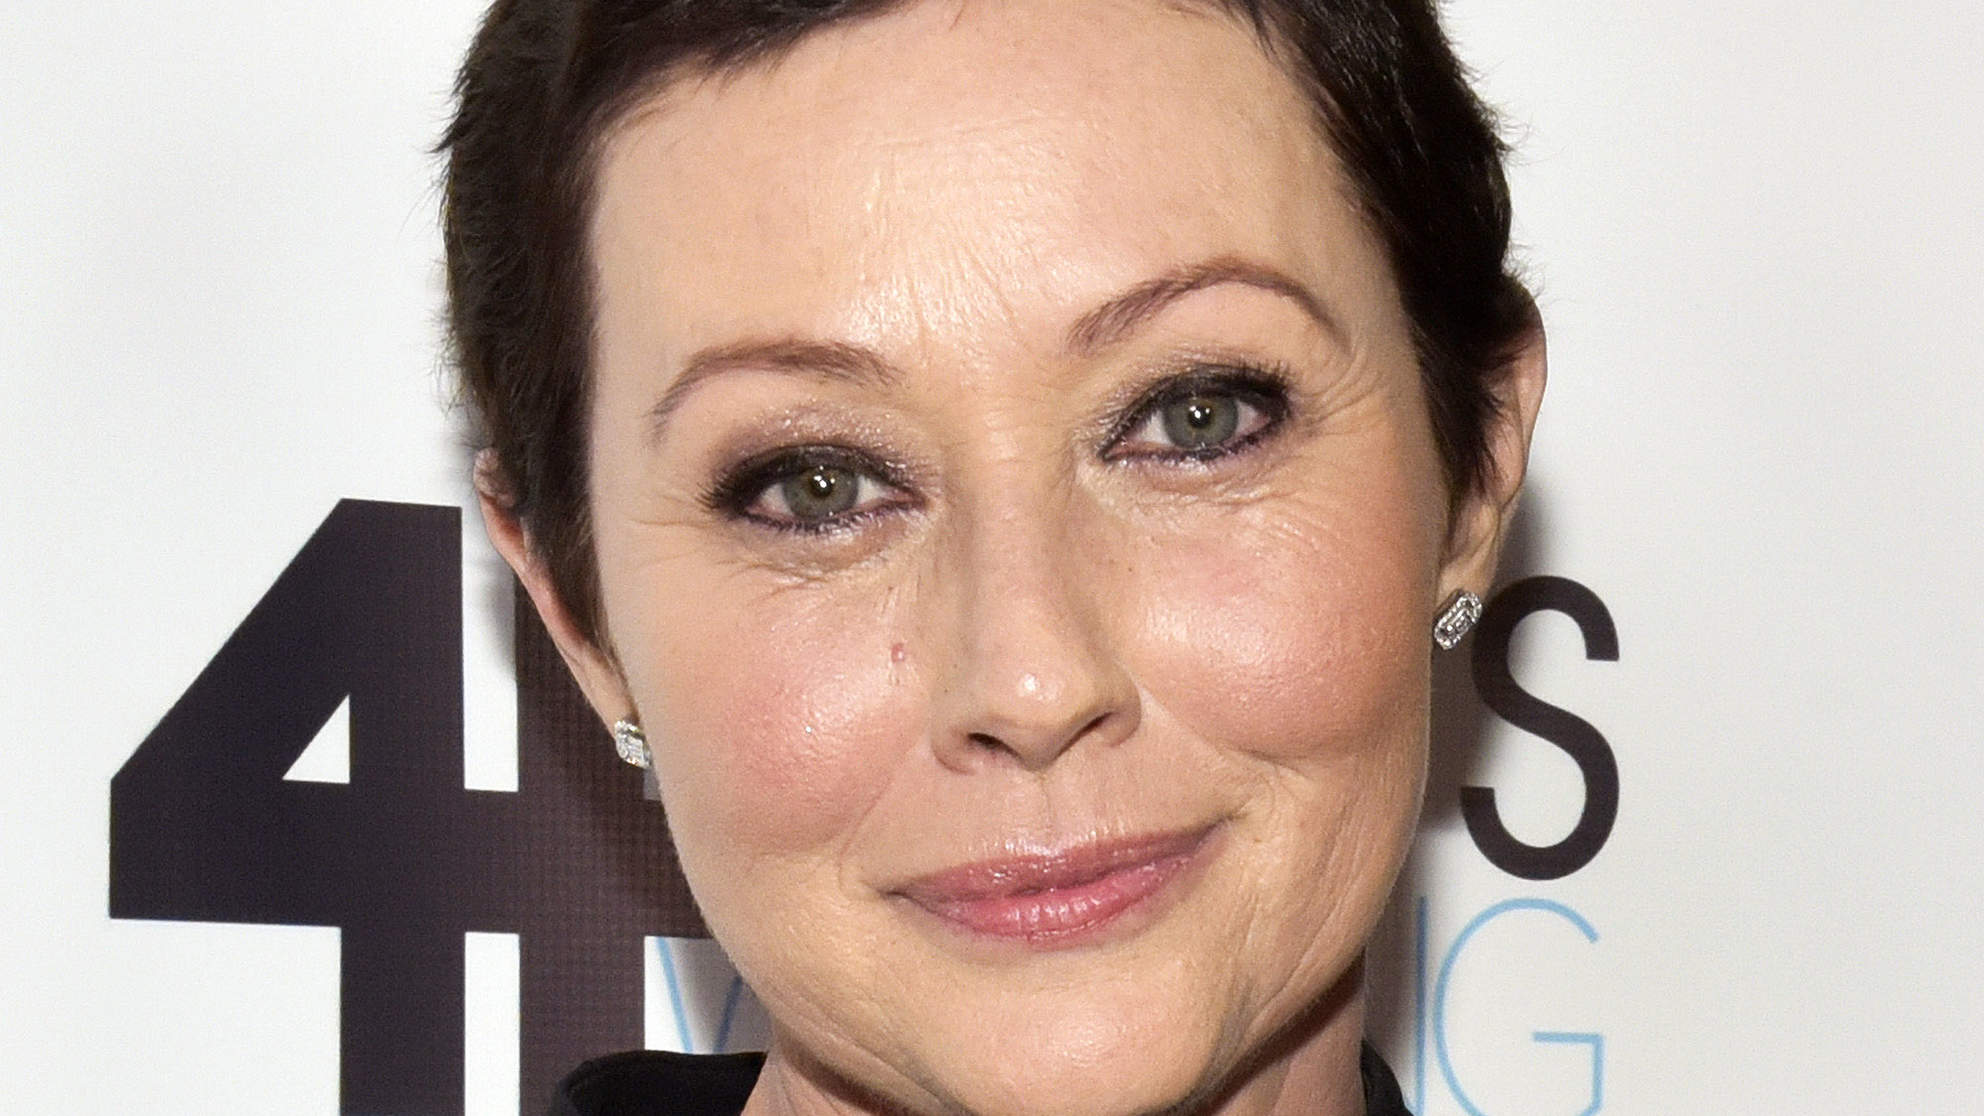 Shannen Doherty Shares Emotional Chemotherapy Photo for Breast Cancer Awareness: 'I Felt Like I Was Losing Myself'